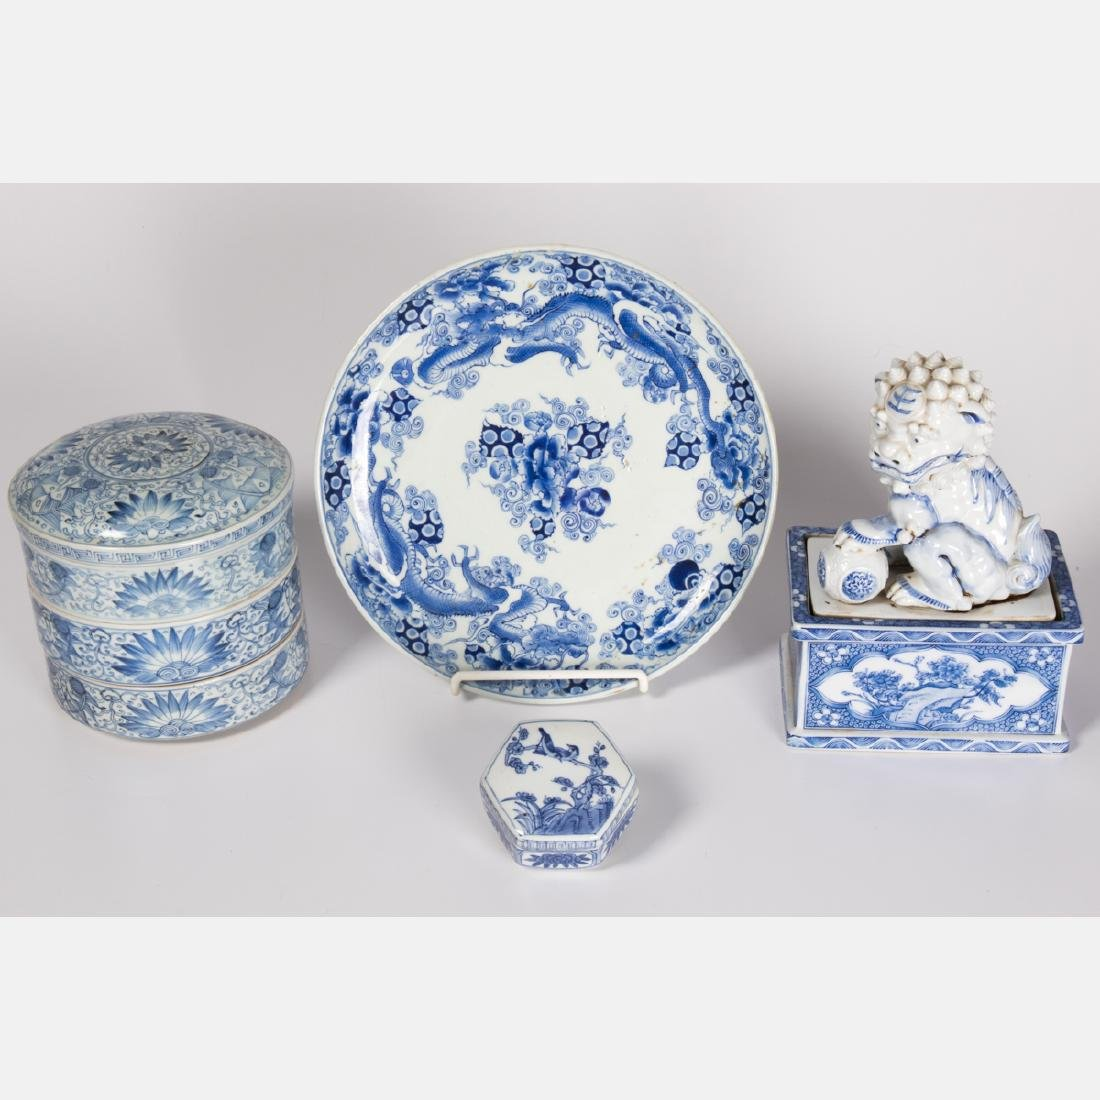 A Group of Three Chinese Blue and White Porcelain and